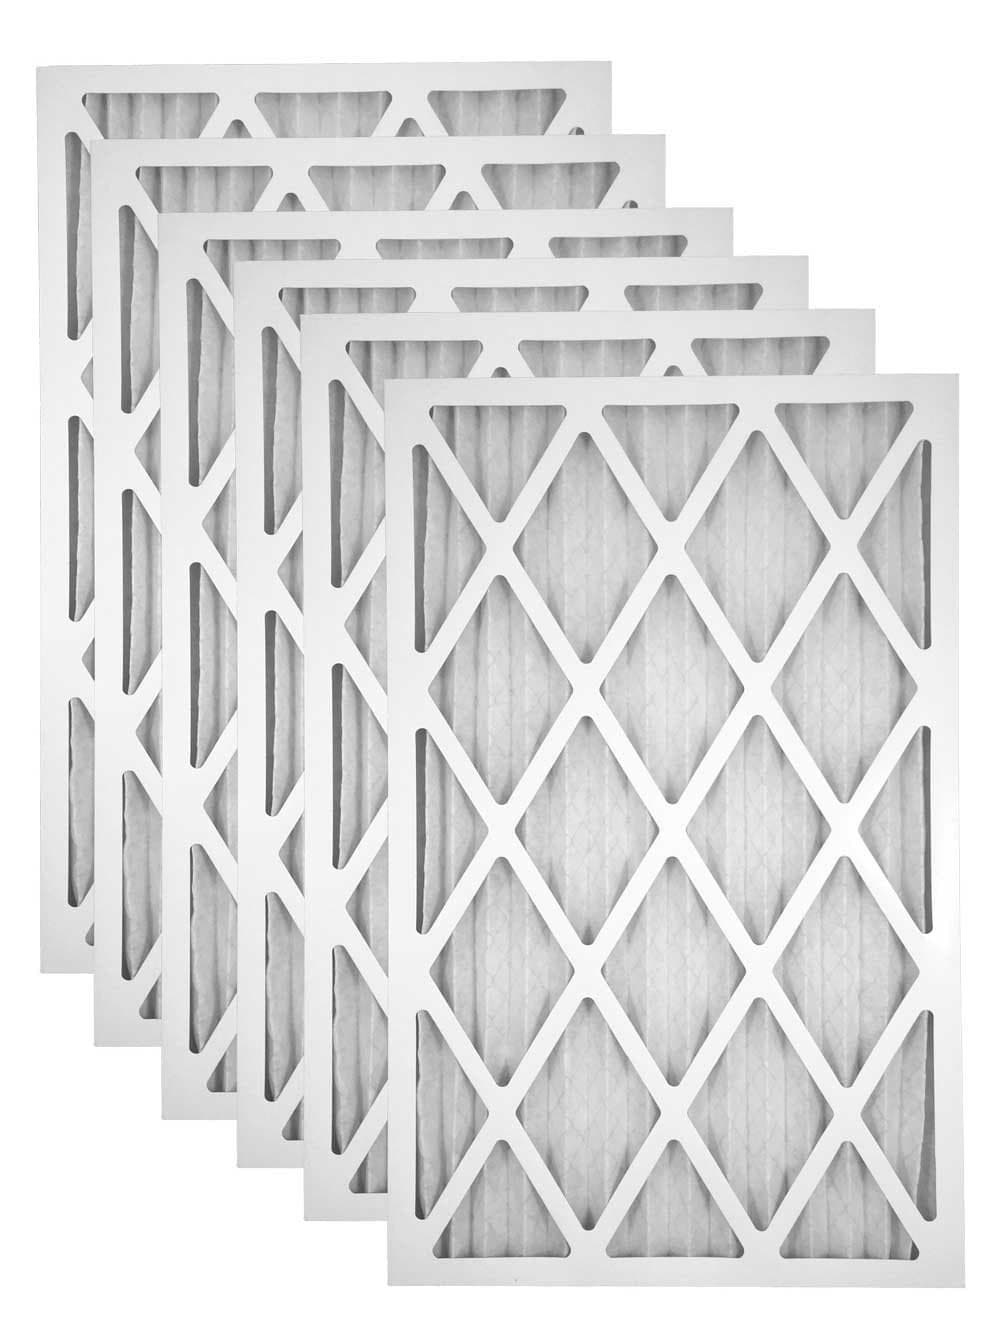 16x32x1 Merv 11 Pleated AC Furnace Filter - Case of 6